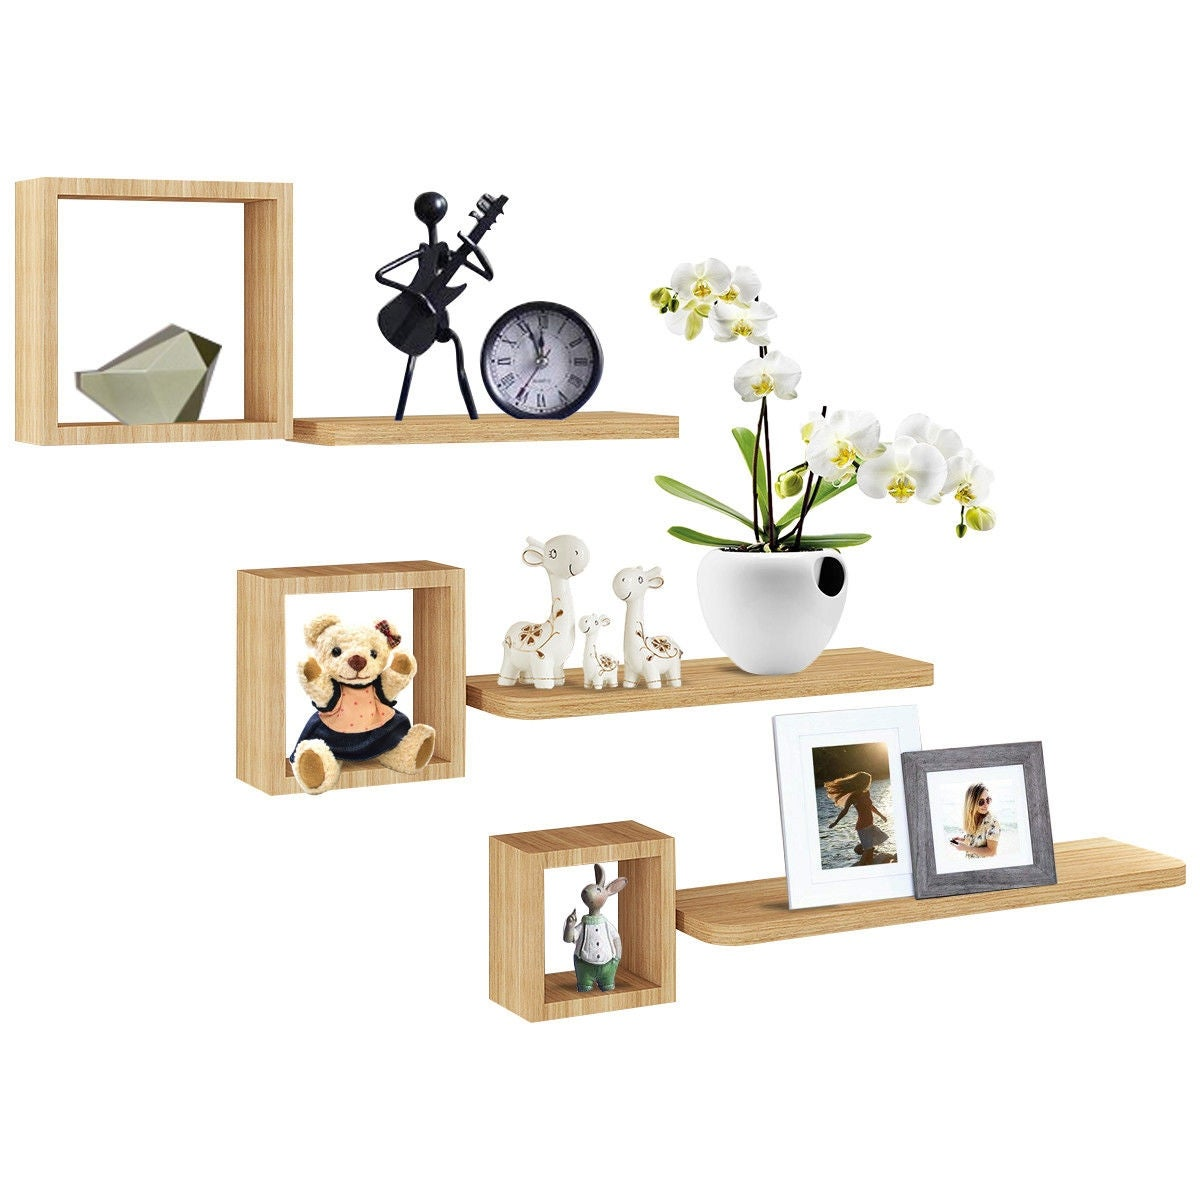 Floating Wall Mounted Shelves Display